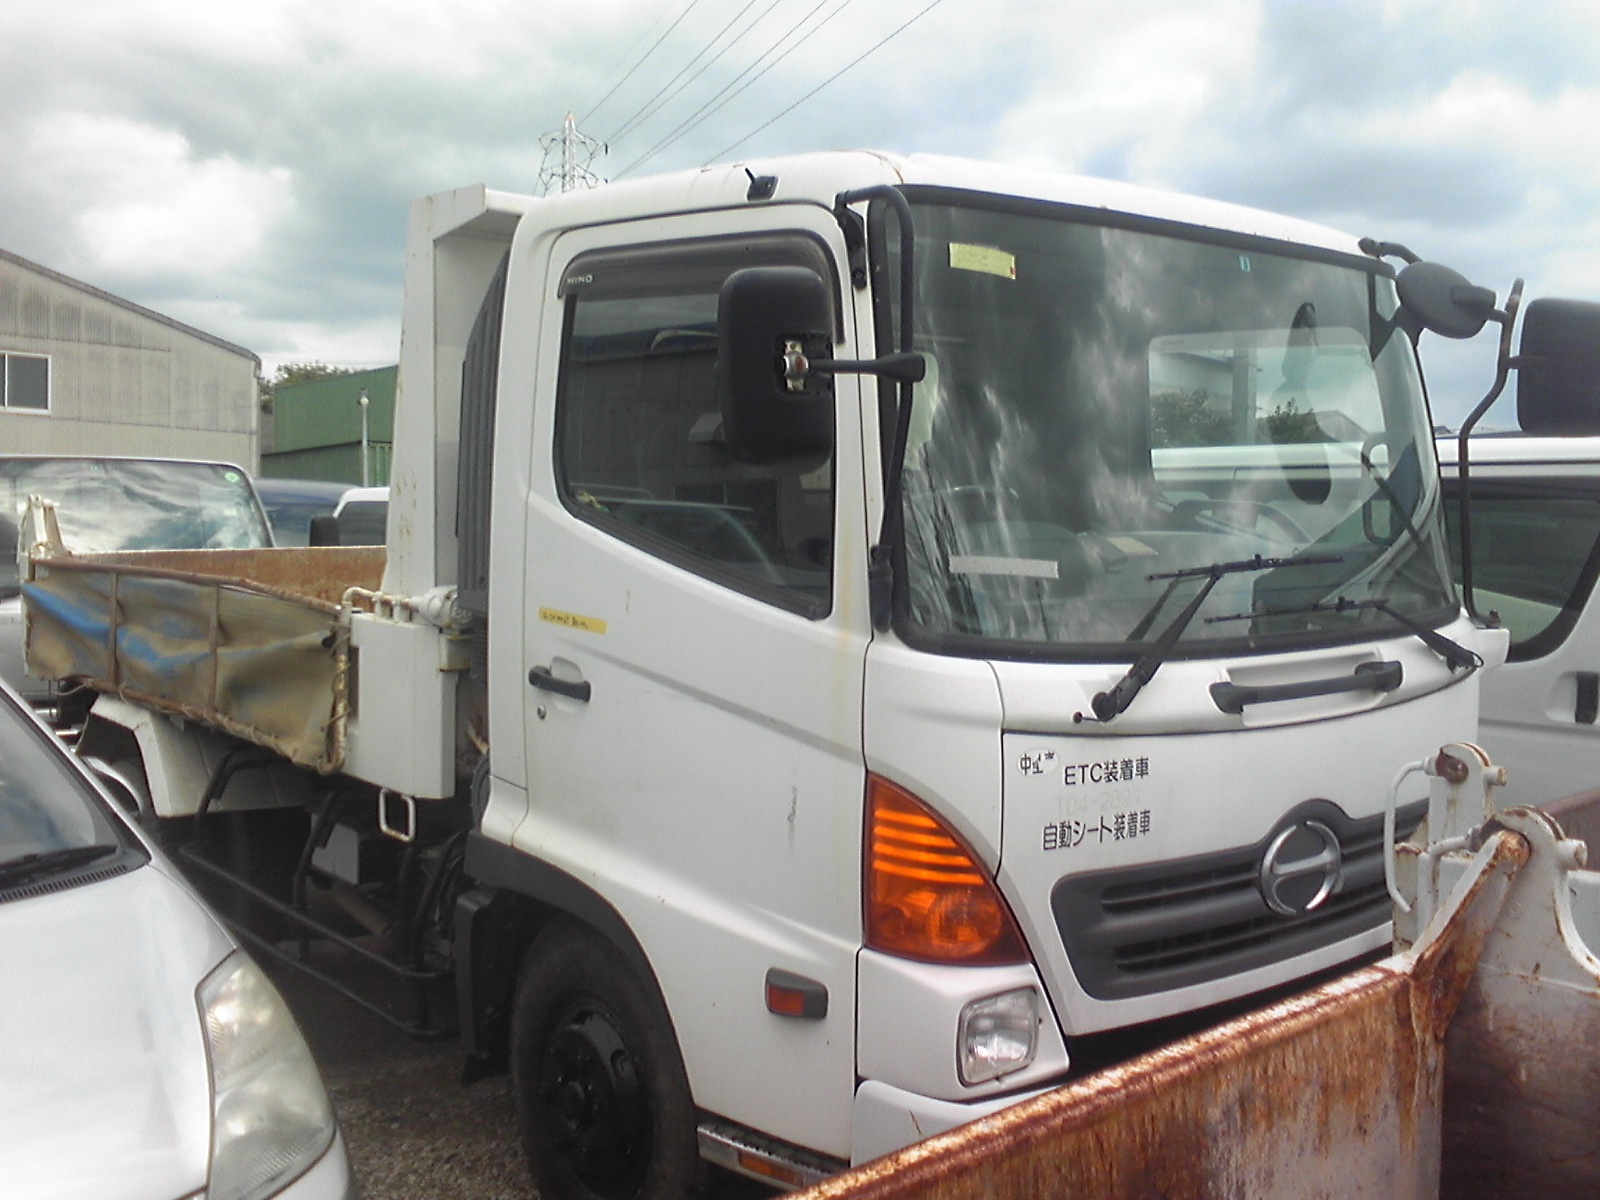 Canter truck sale double cabin 4wd japan import jpn car - I Will Write Down Kms Later On And Put Up Other Photos